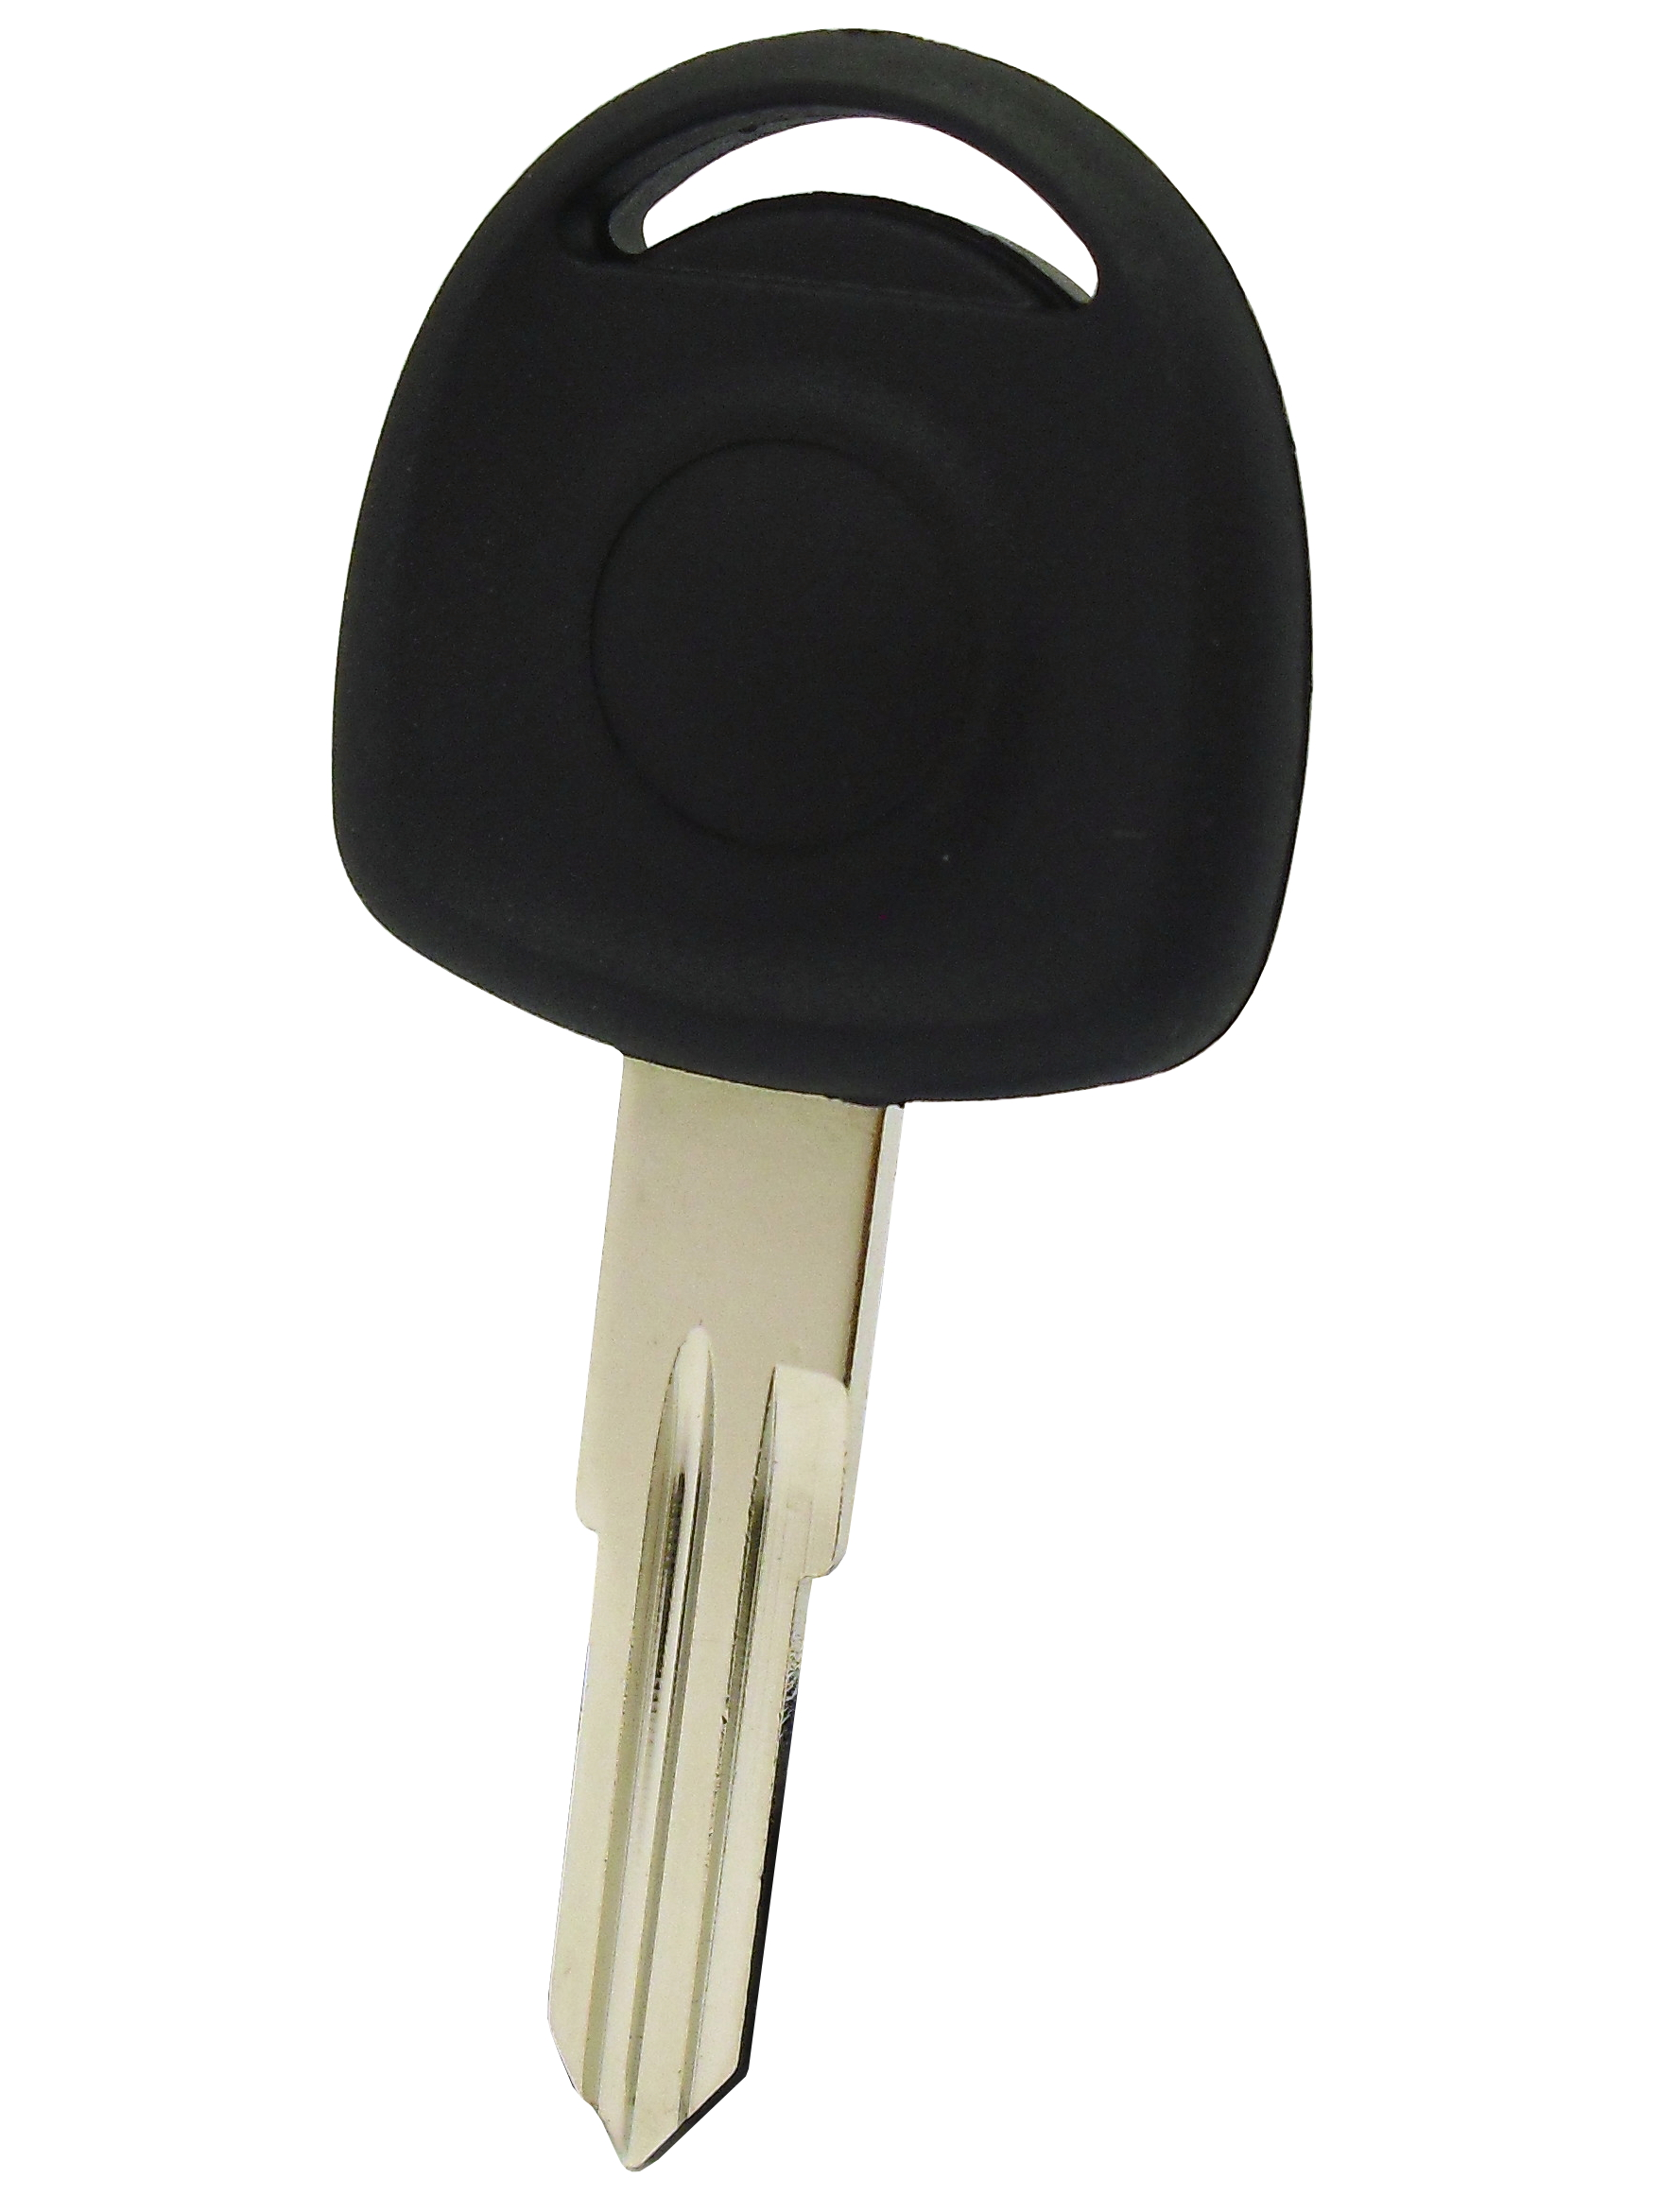 GM Cadillac Transponder Key - New/Uncut